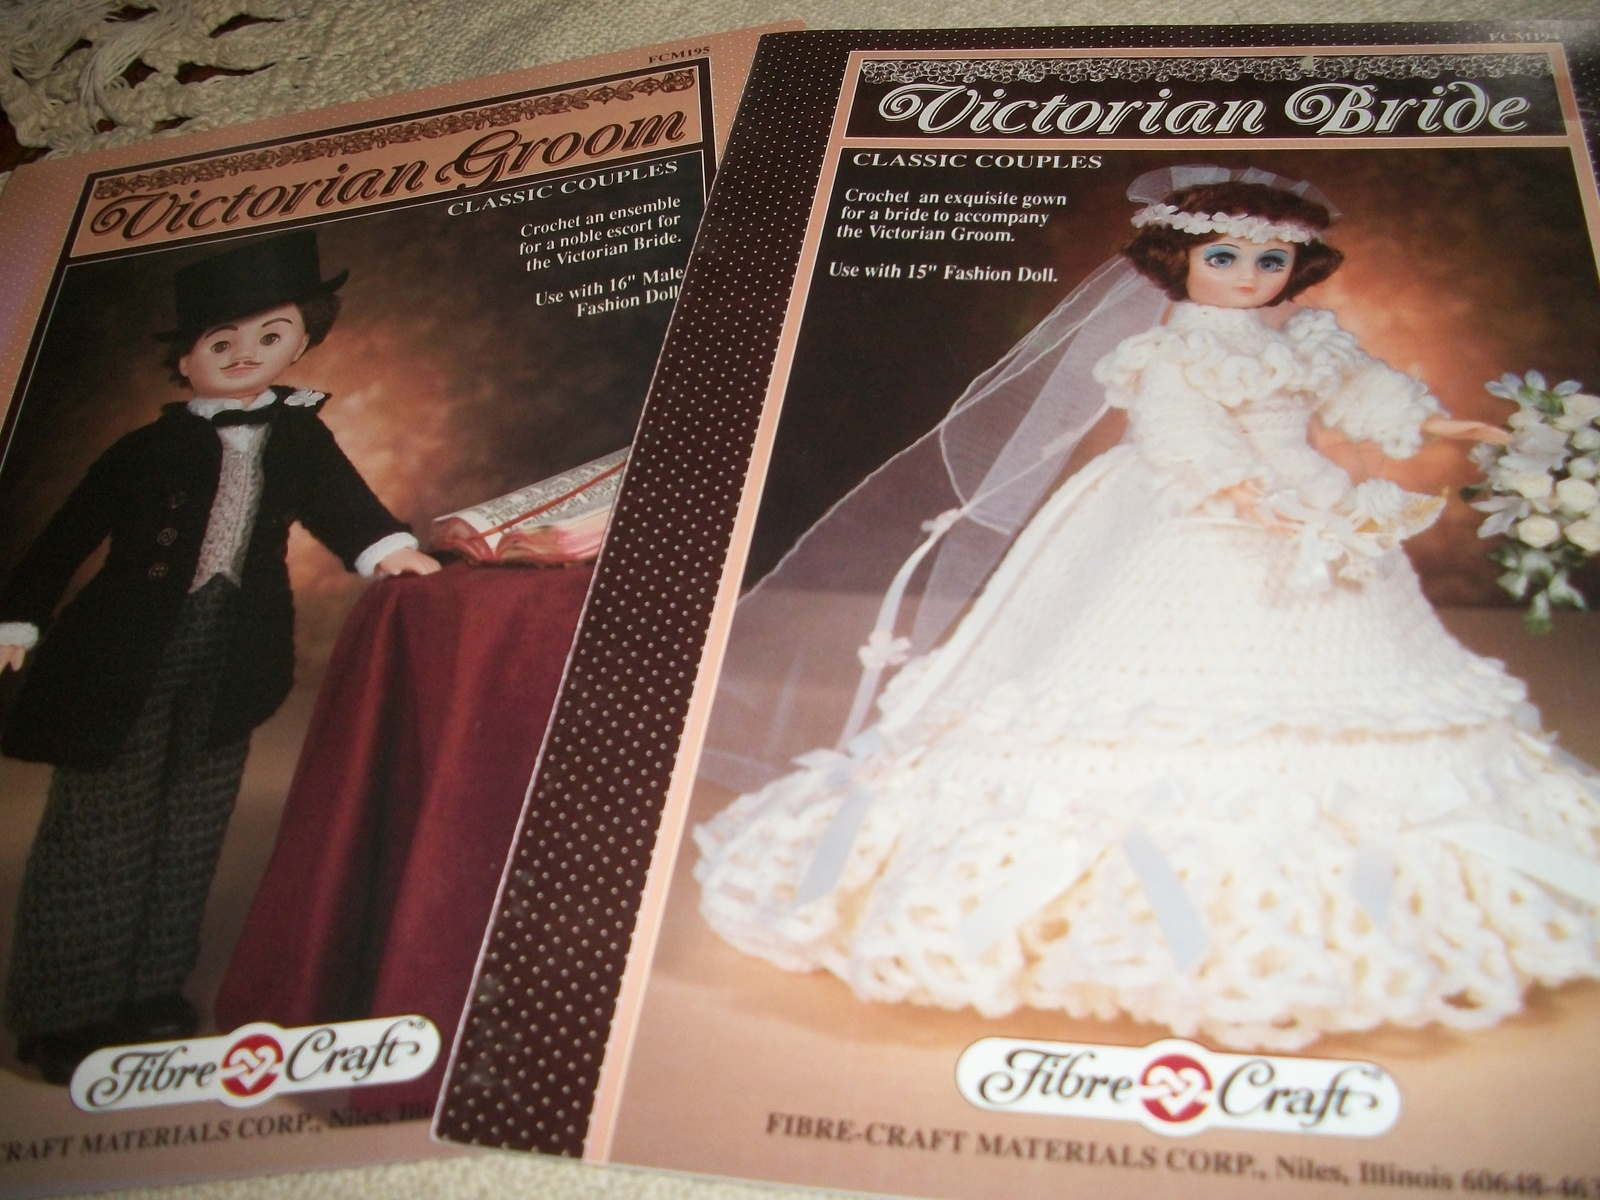 Primary image for Victorian Groom & Victorian Bride Crochet Clothing Patterns